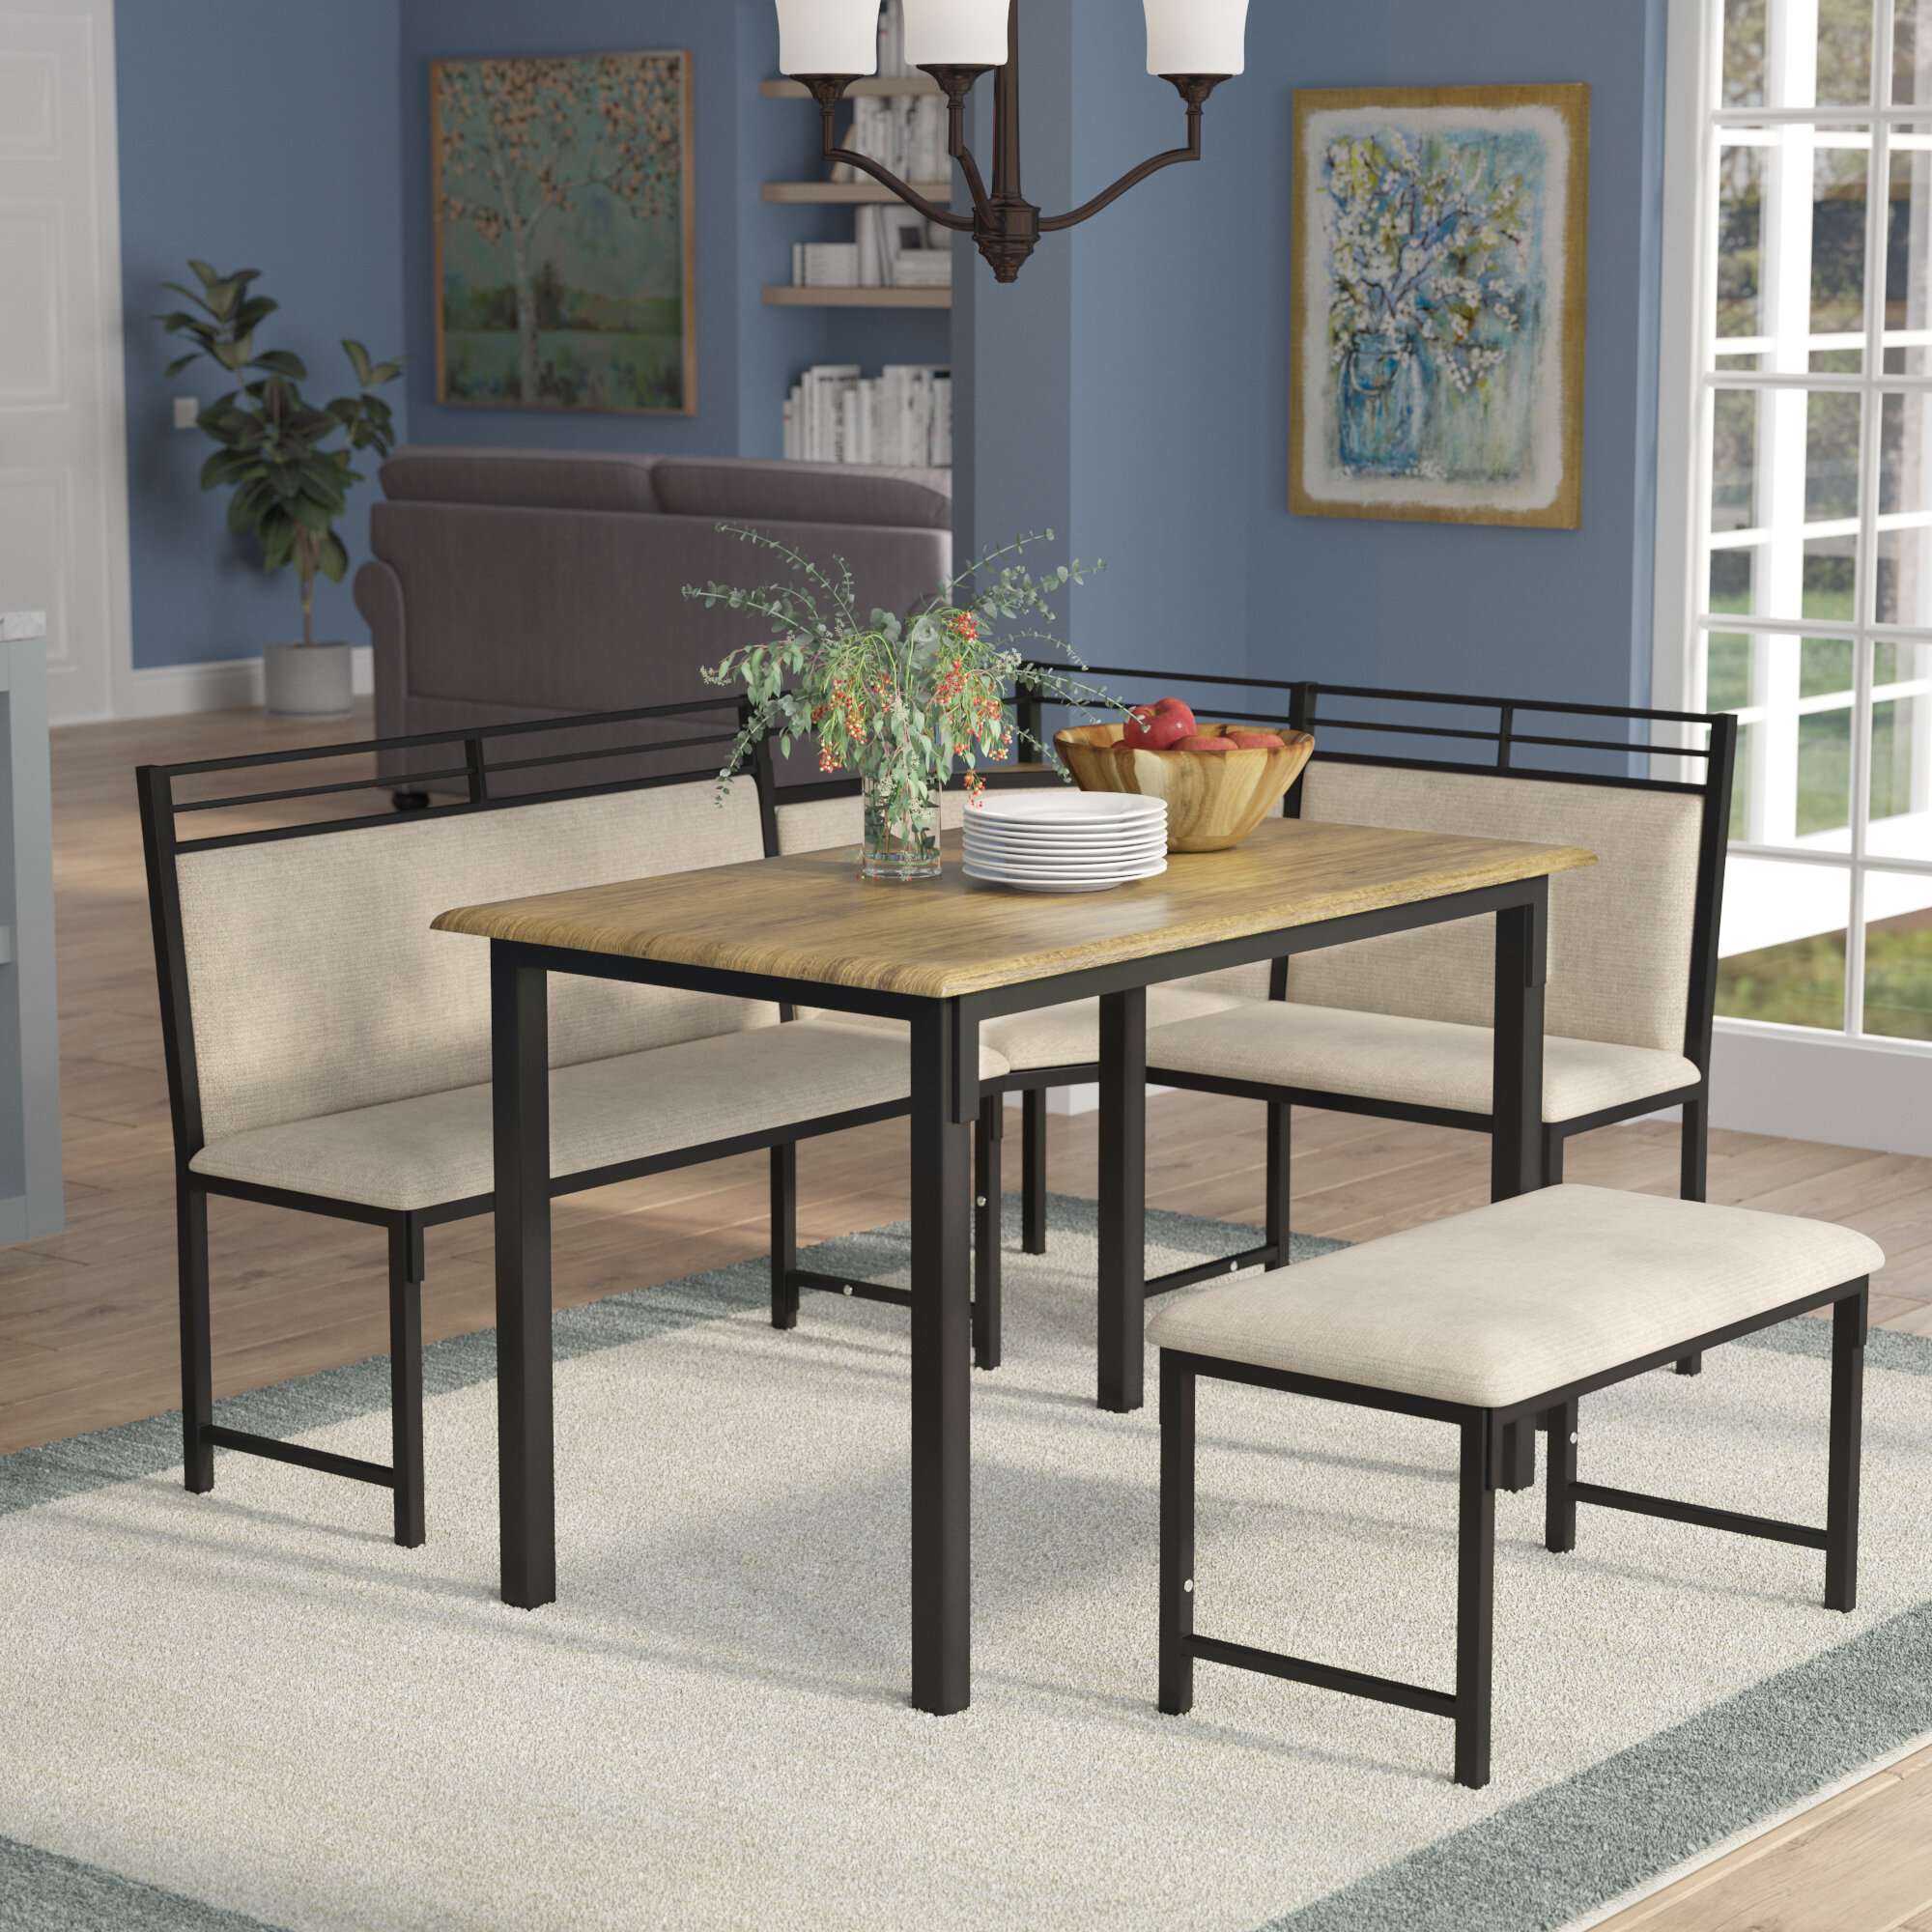 corner furniture piece. Red Barrel Studio Moonachie Corner 3 Piece Dining Set \u0026 Reviews | Wayfair Furniture